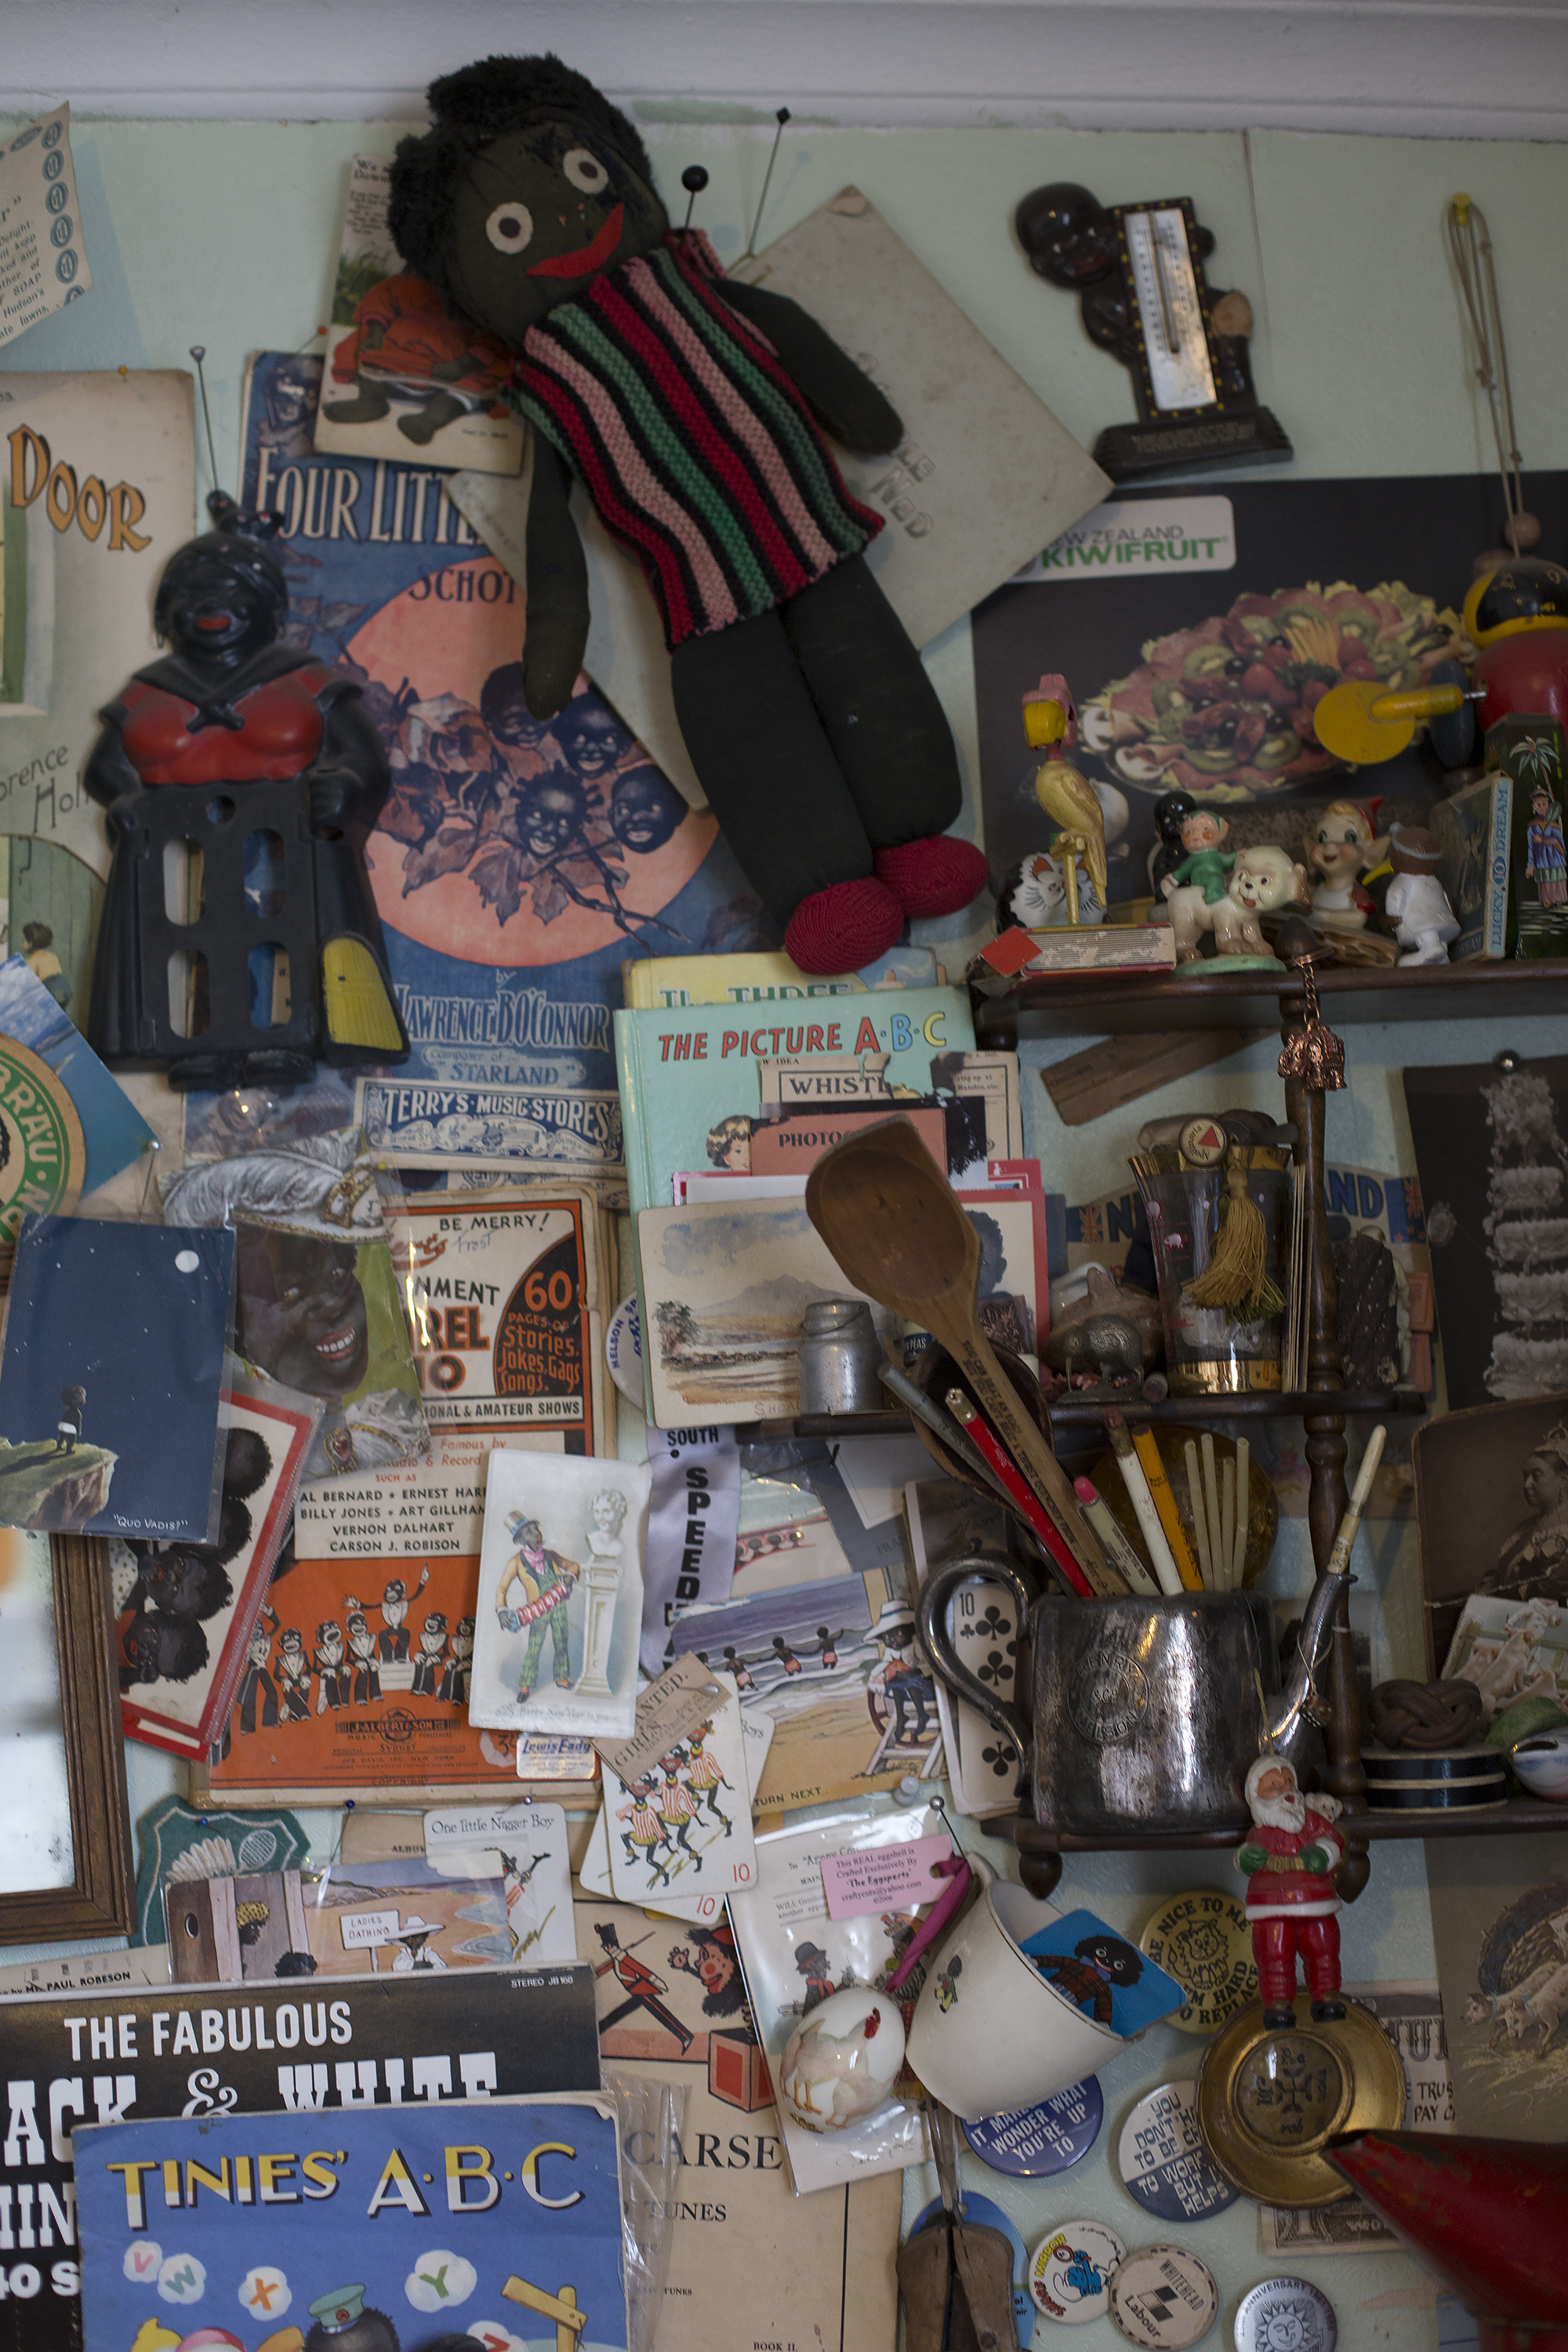 This is the wall of the back office, with all the speciality items and the controversial collections.